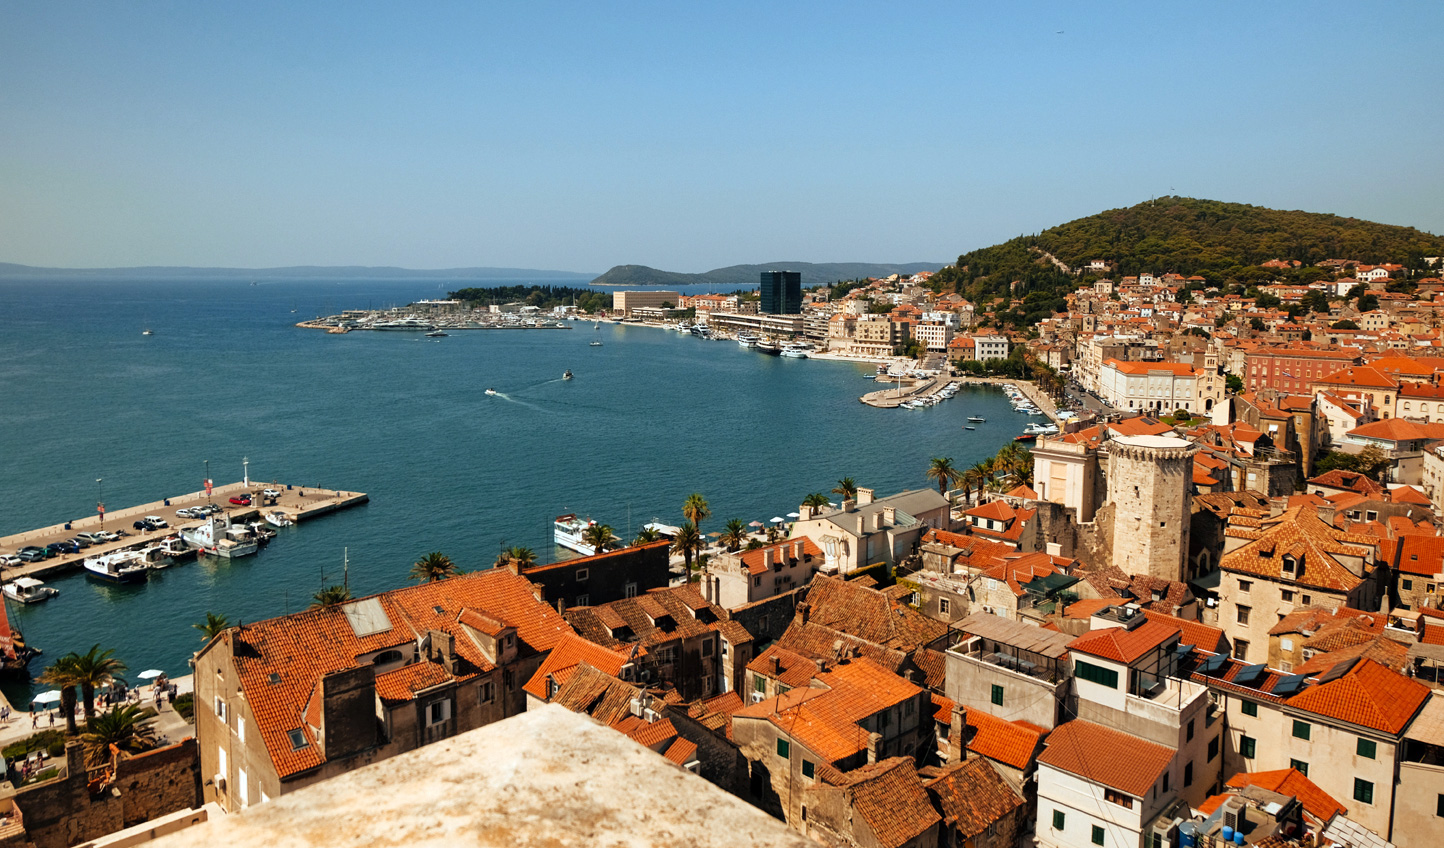 Soak up views over Split and the Adriatic